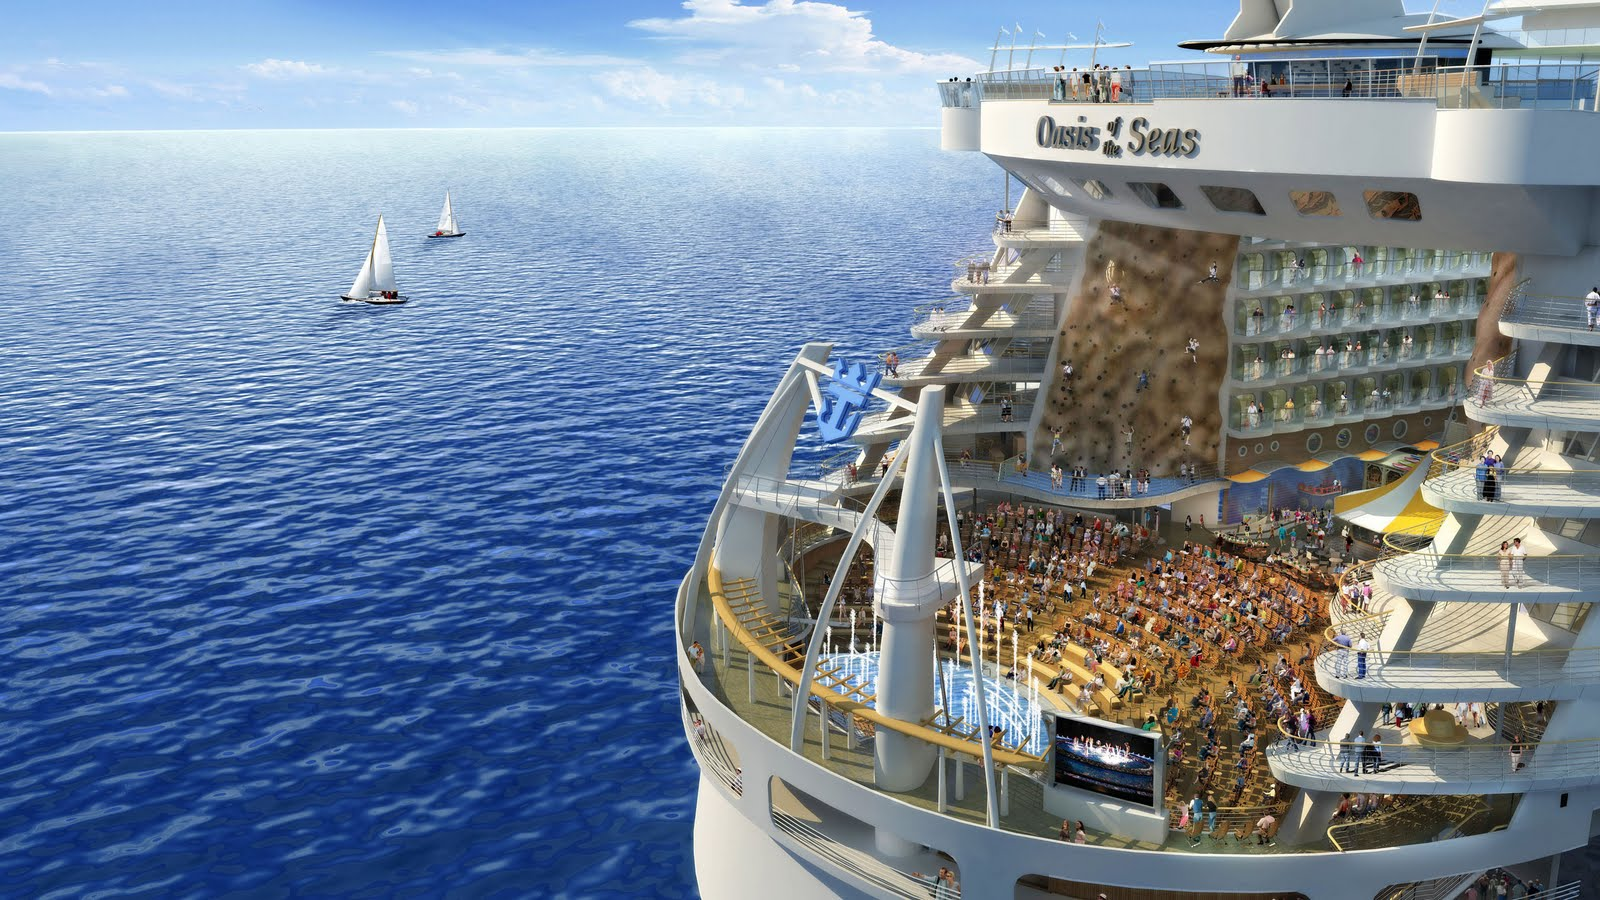 Royal Caribbean Desktop Wallpaper PicsWallpapercom 1600x900